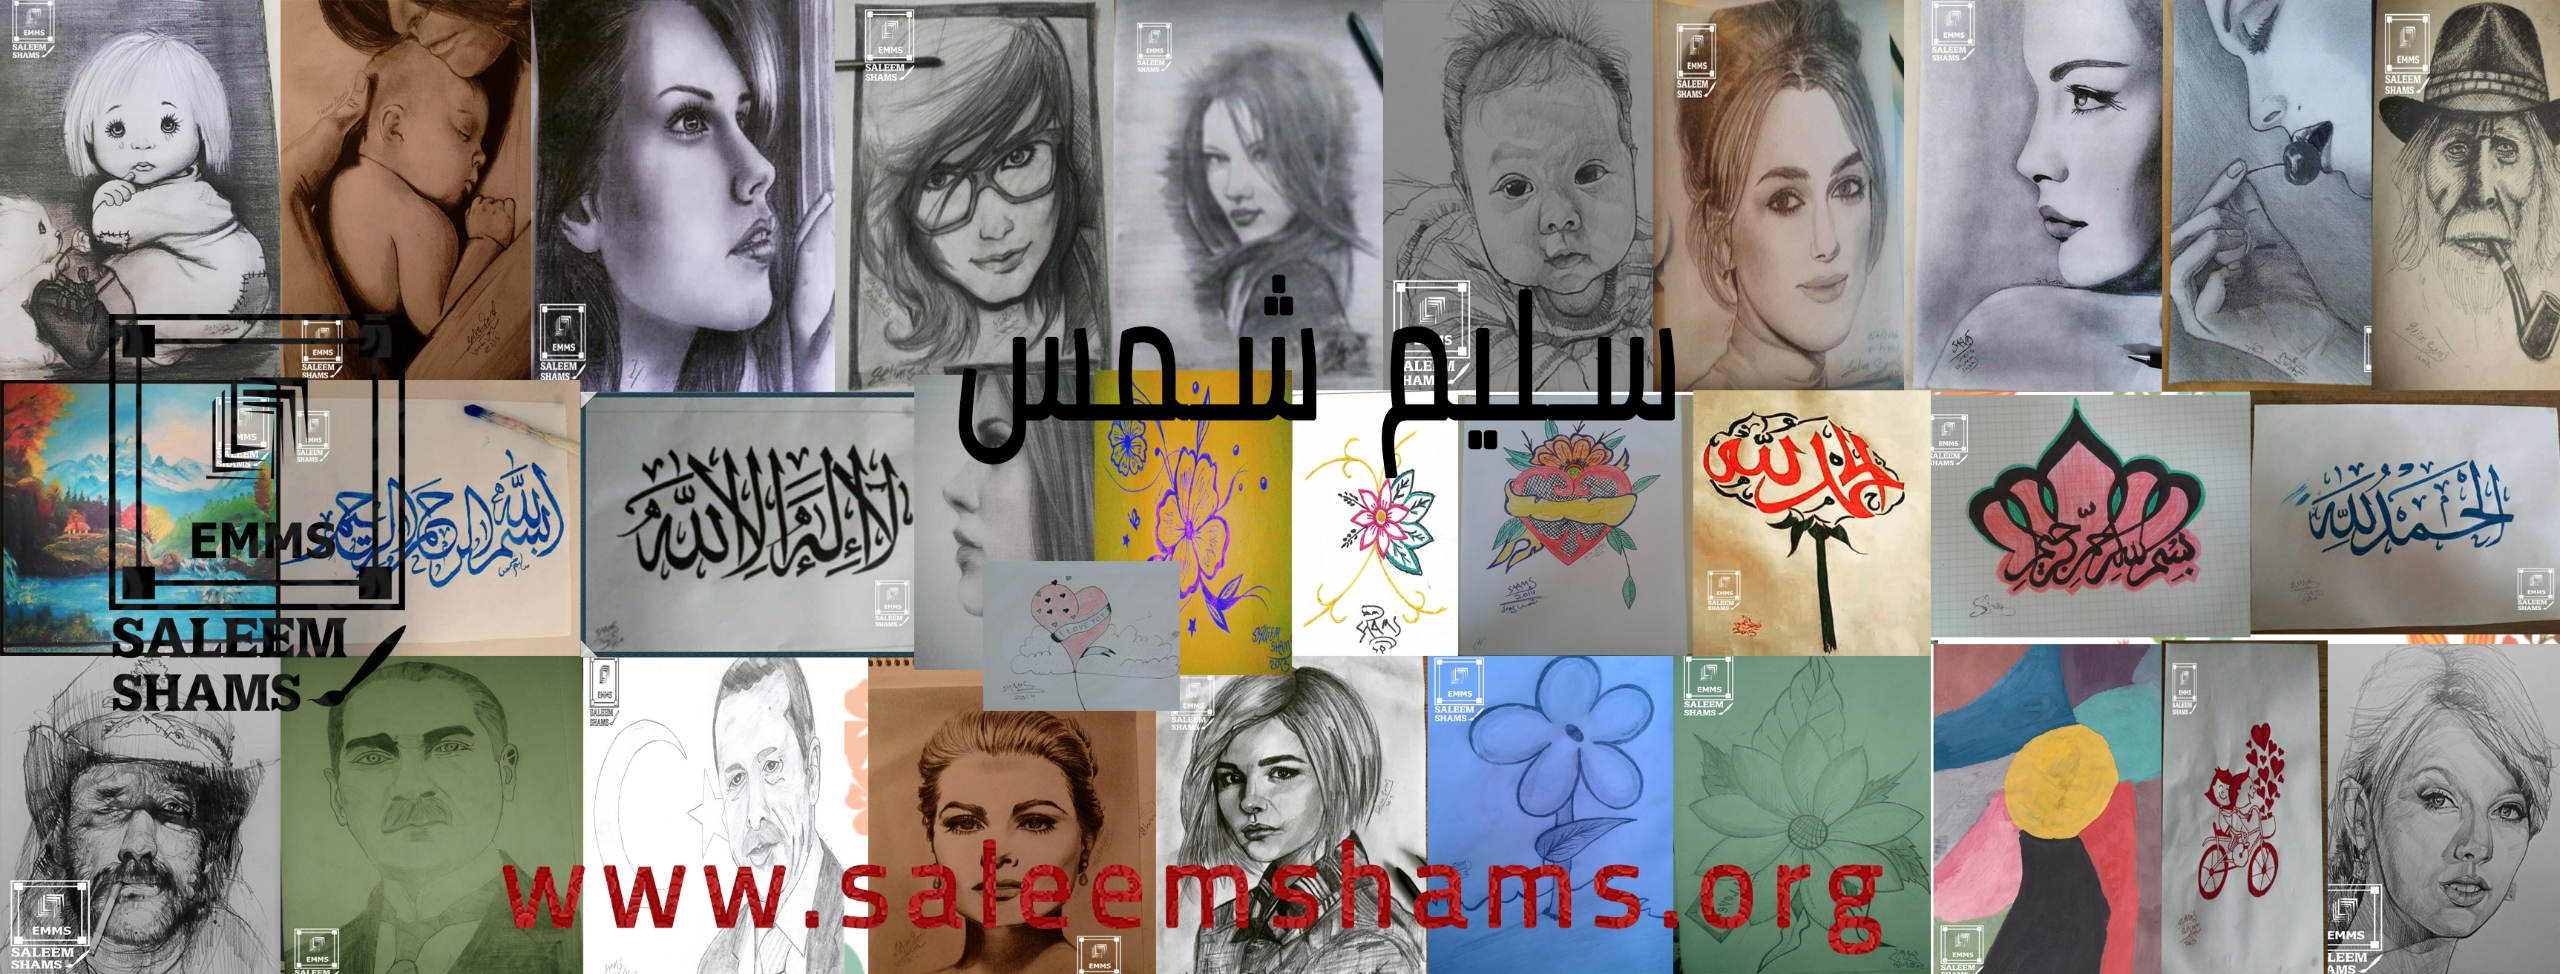 Sam Shams  (@saleemshams) Cover Image